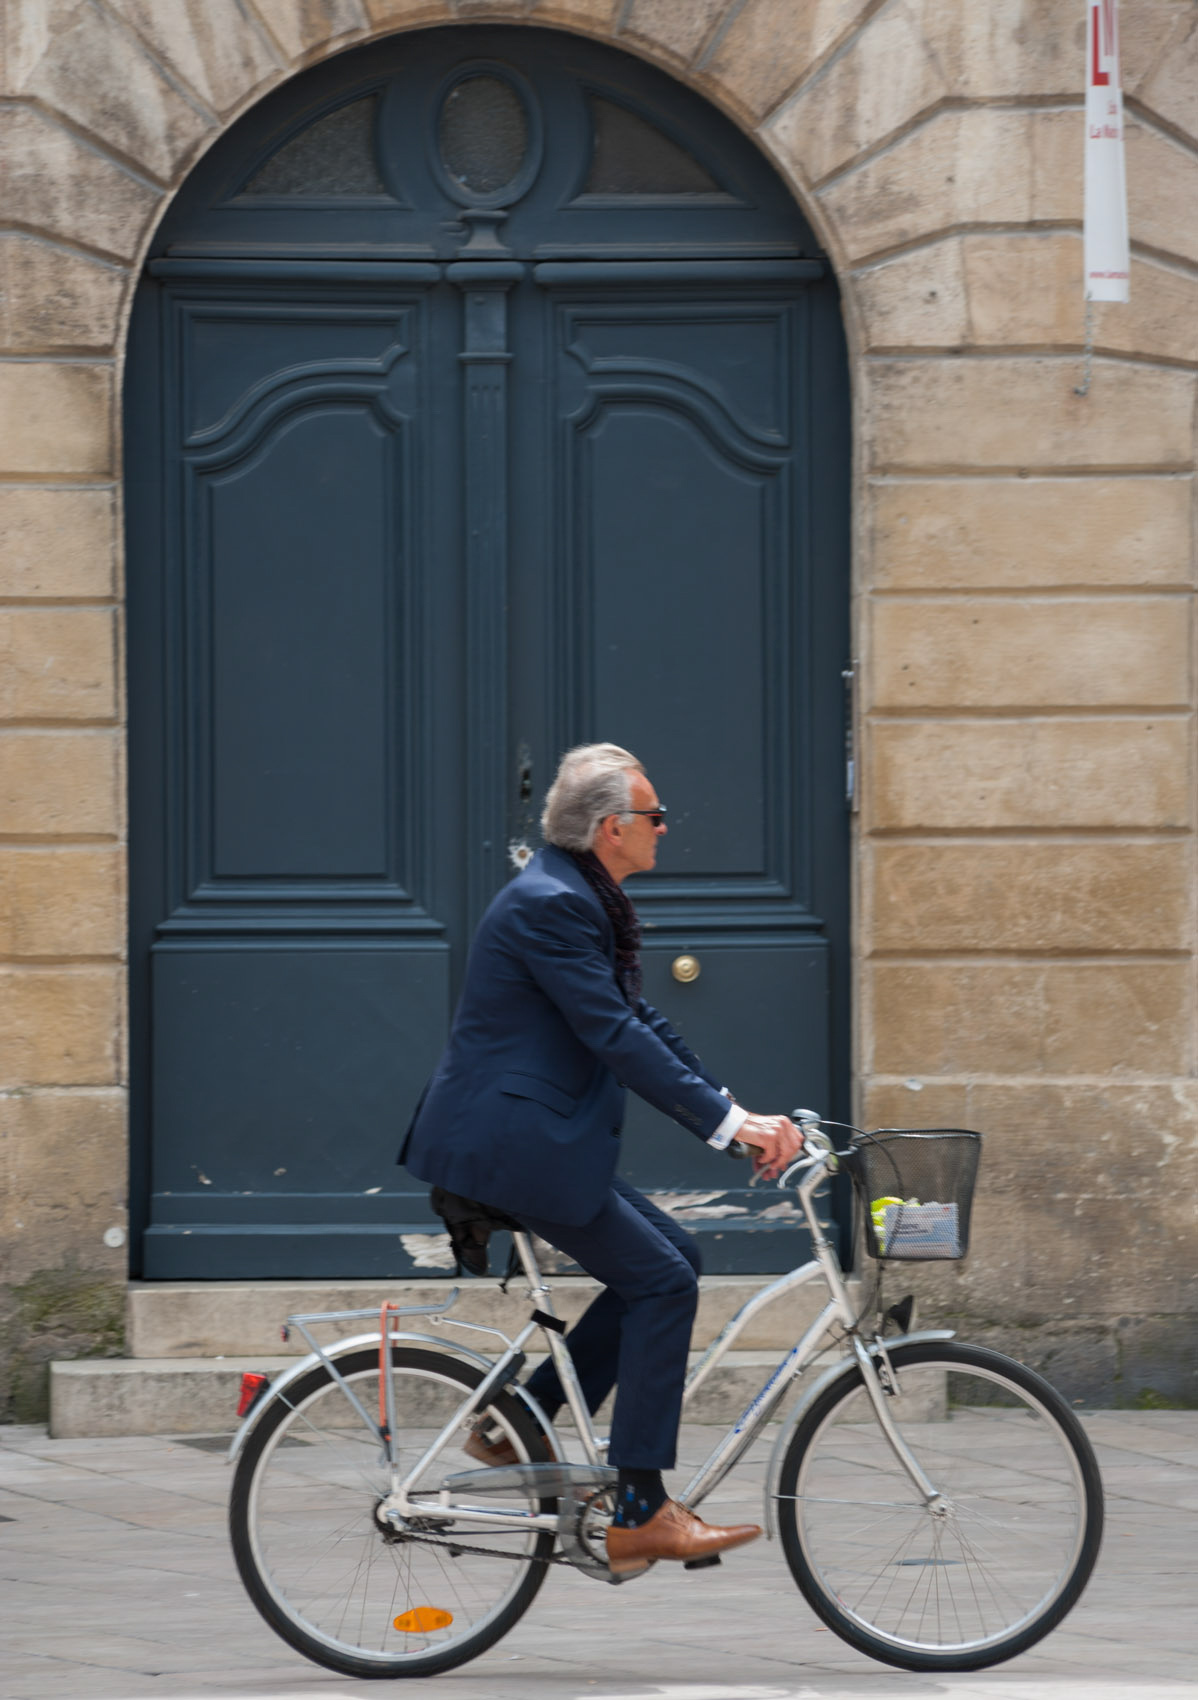 O18-340 Elegant man cycling in Bordeaux